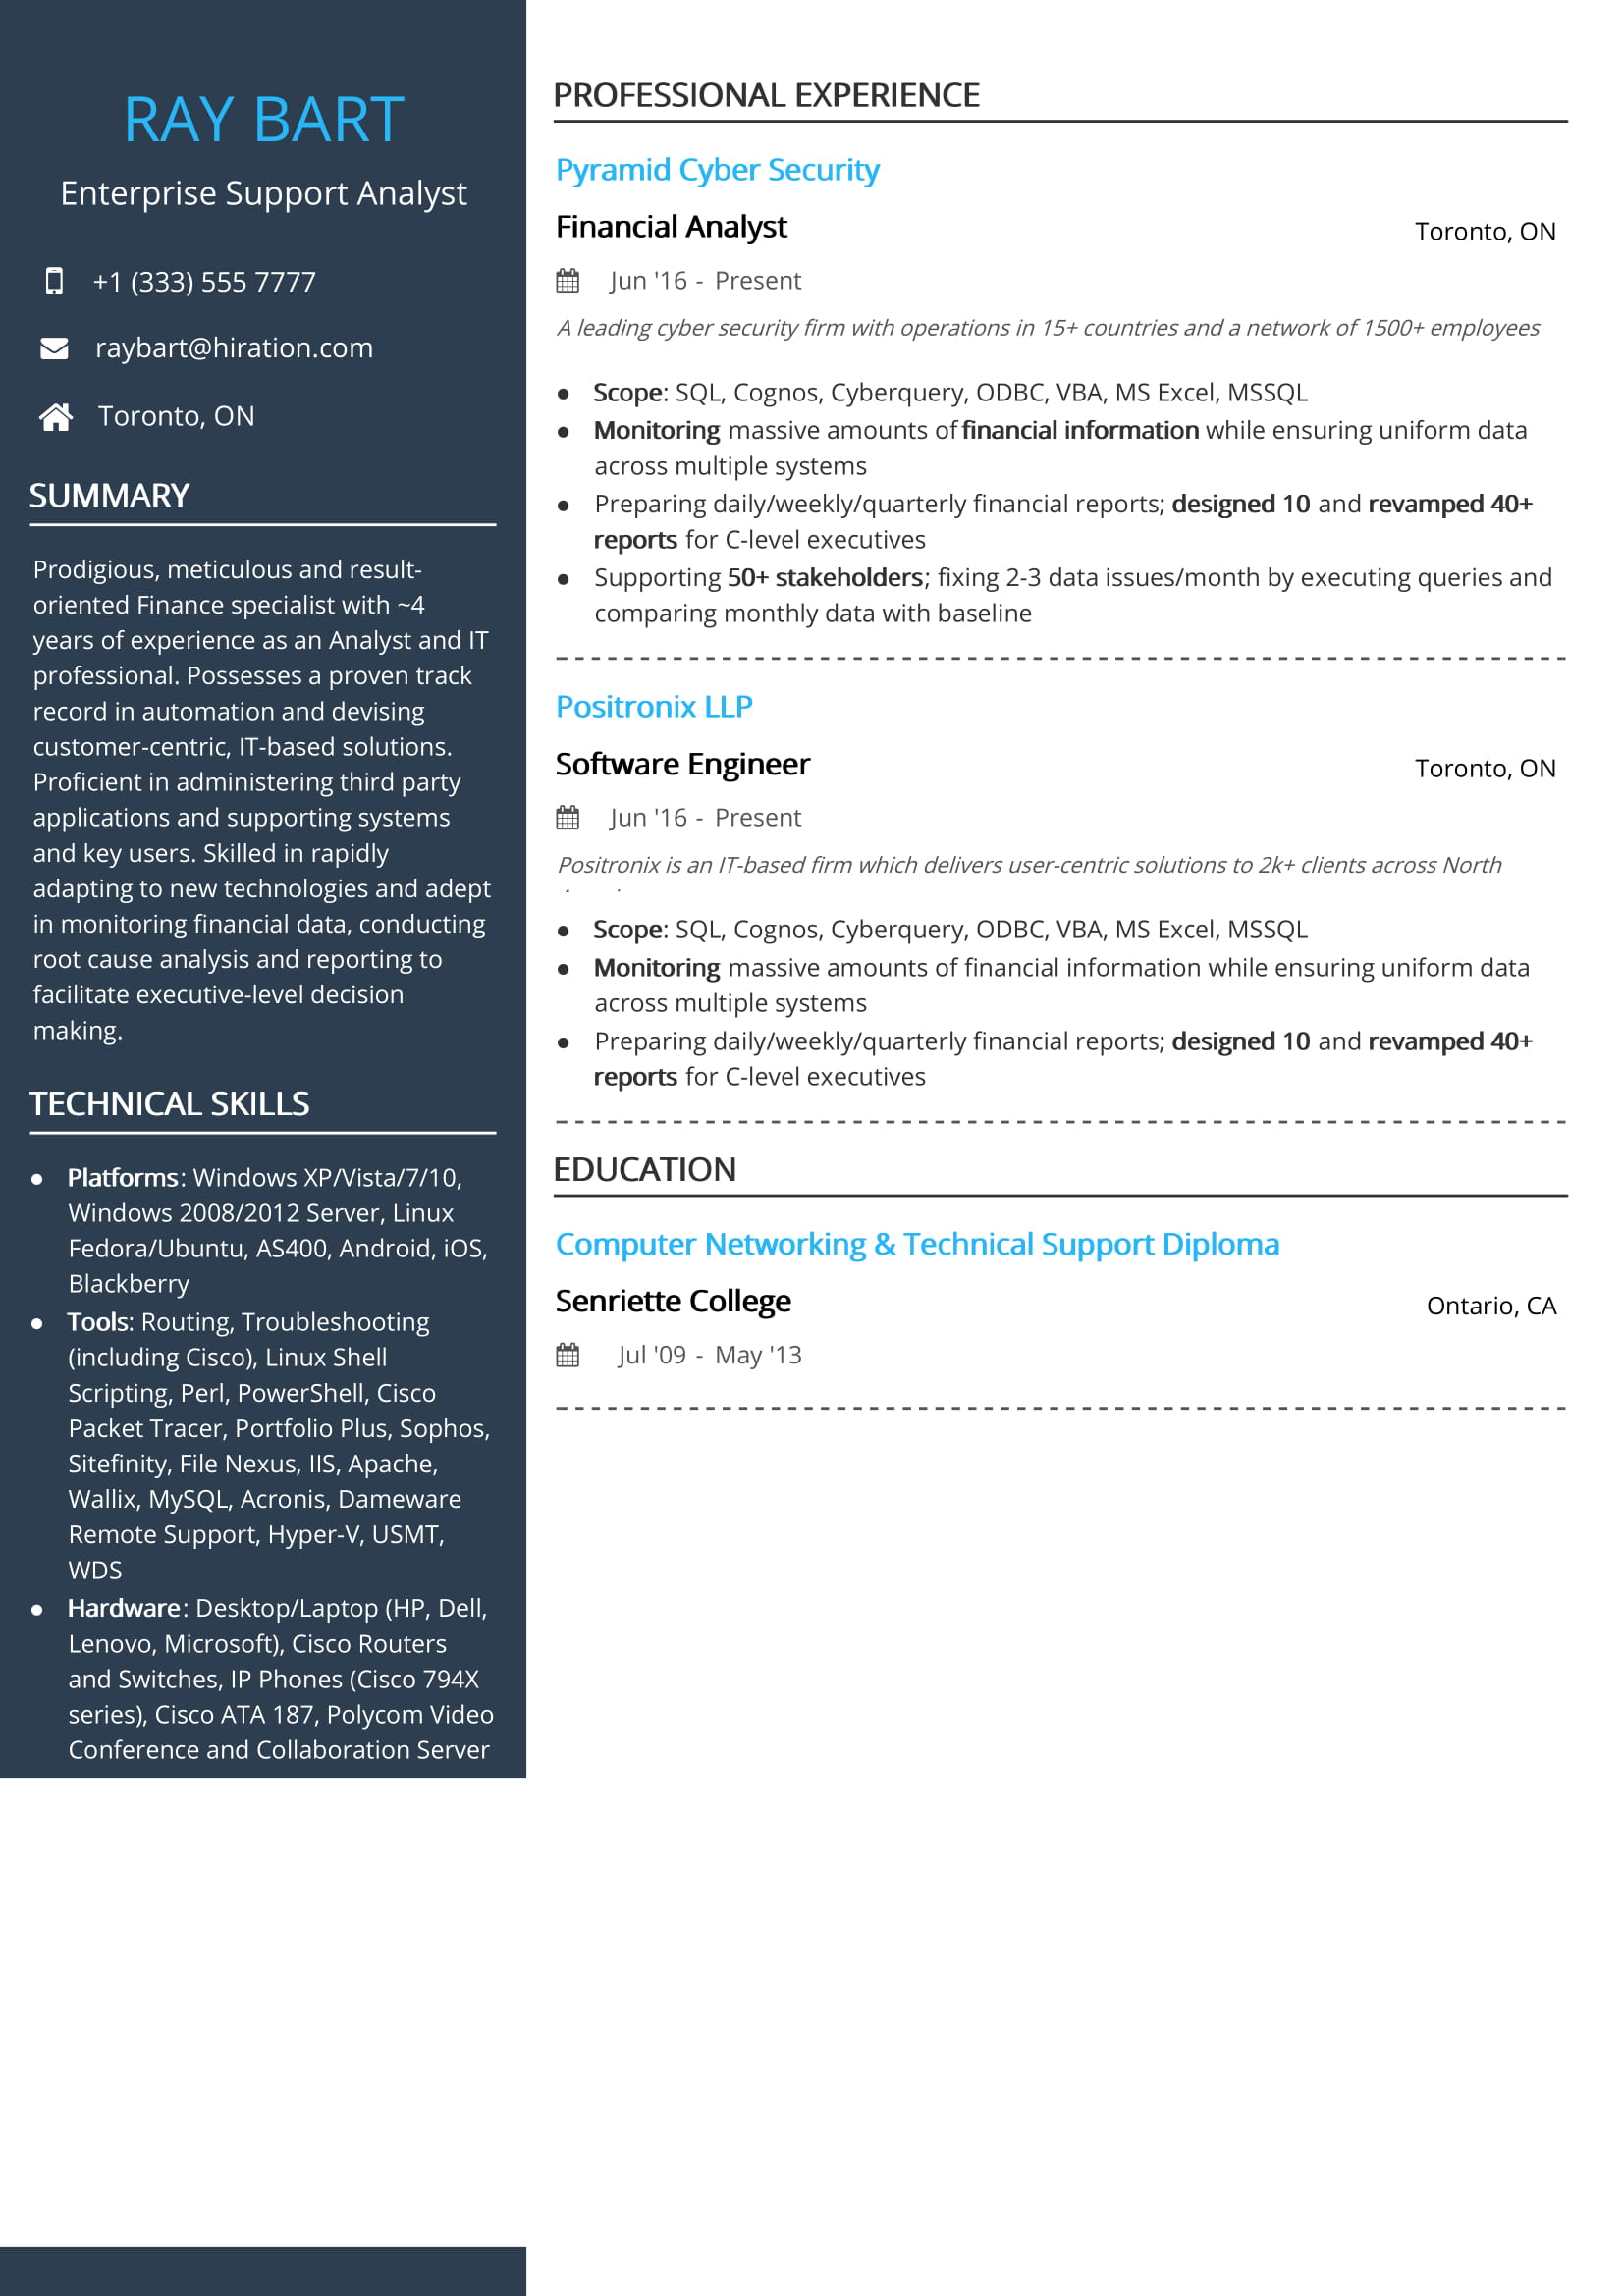 free enterprise support analyst resume sample by hiration specialist toronto volunteer Resume Resume Specialist Toronto